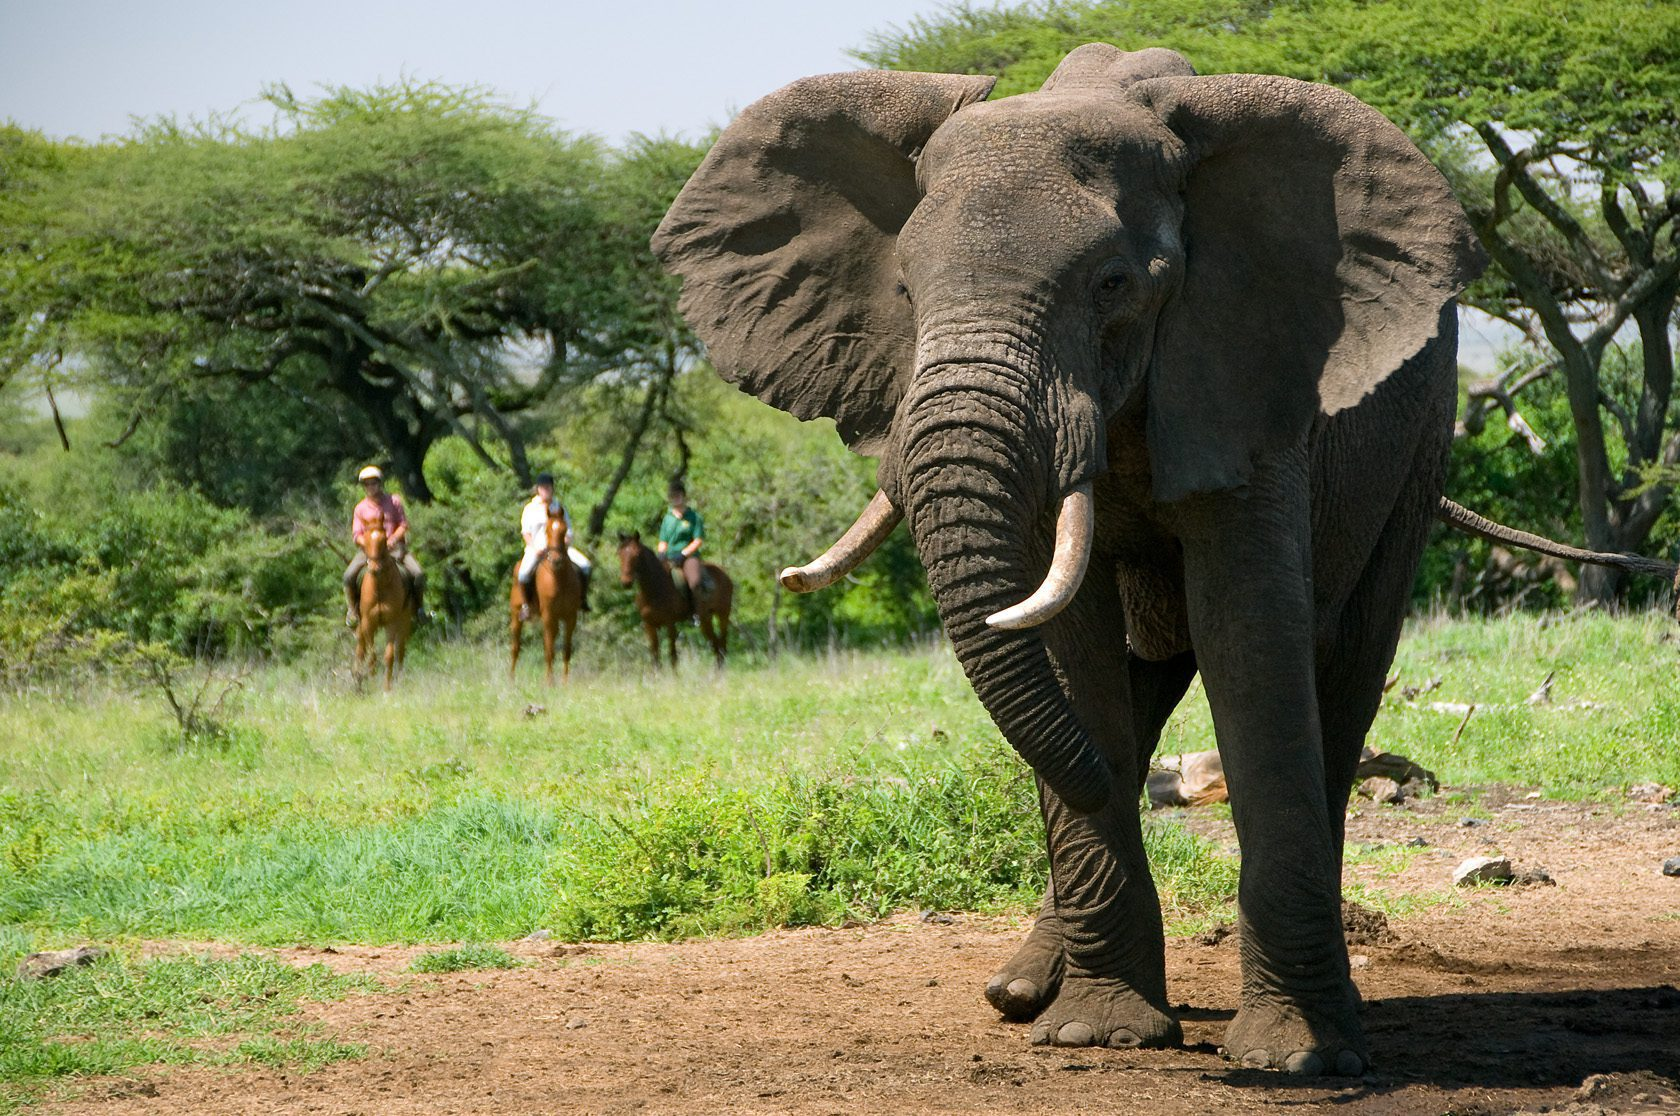 three horseback riders stop to observe a large tusker elephant at Ol Donya in Kenya